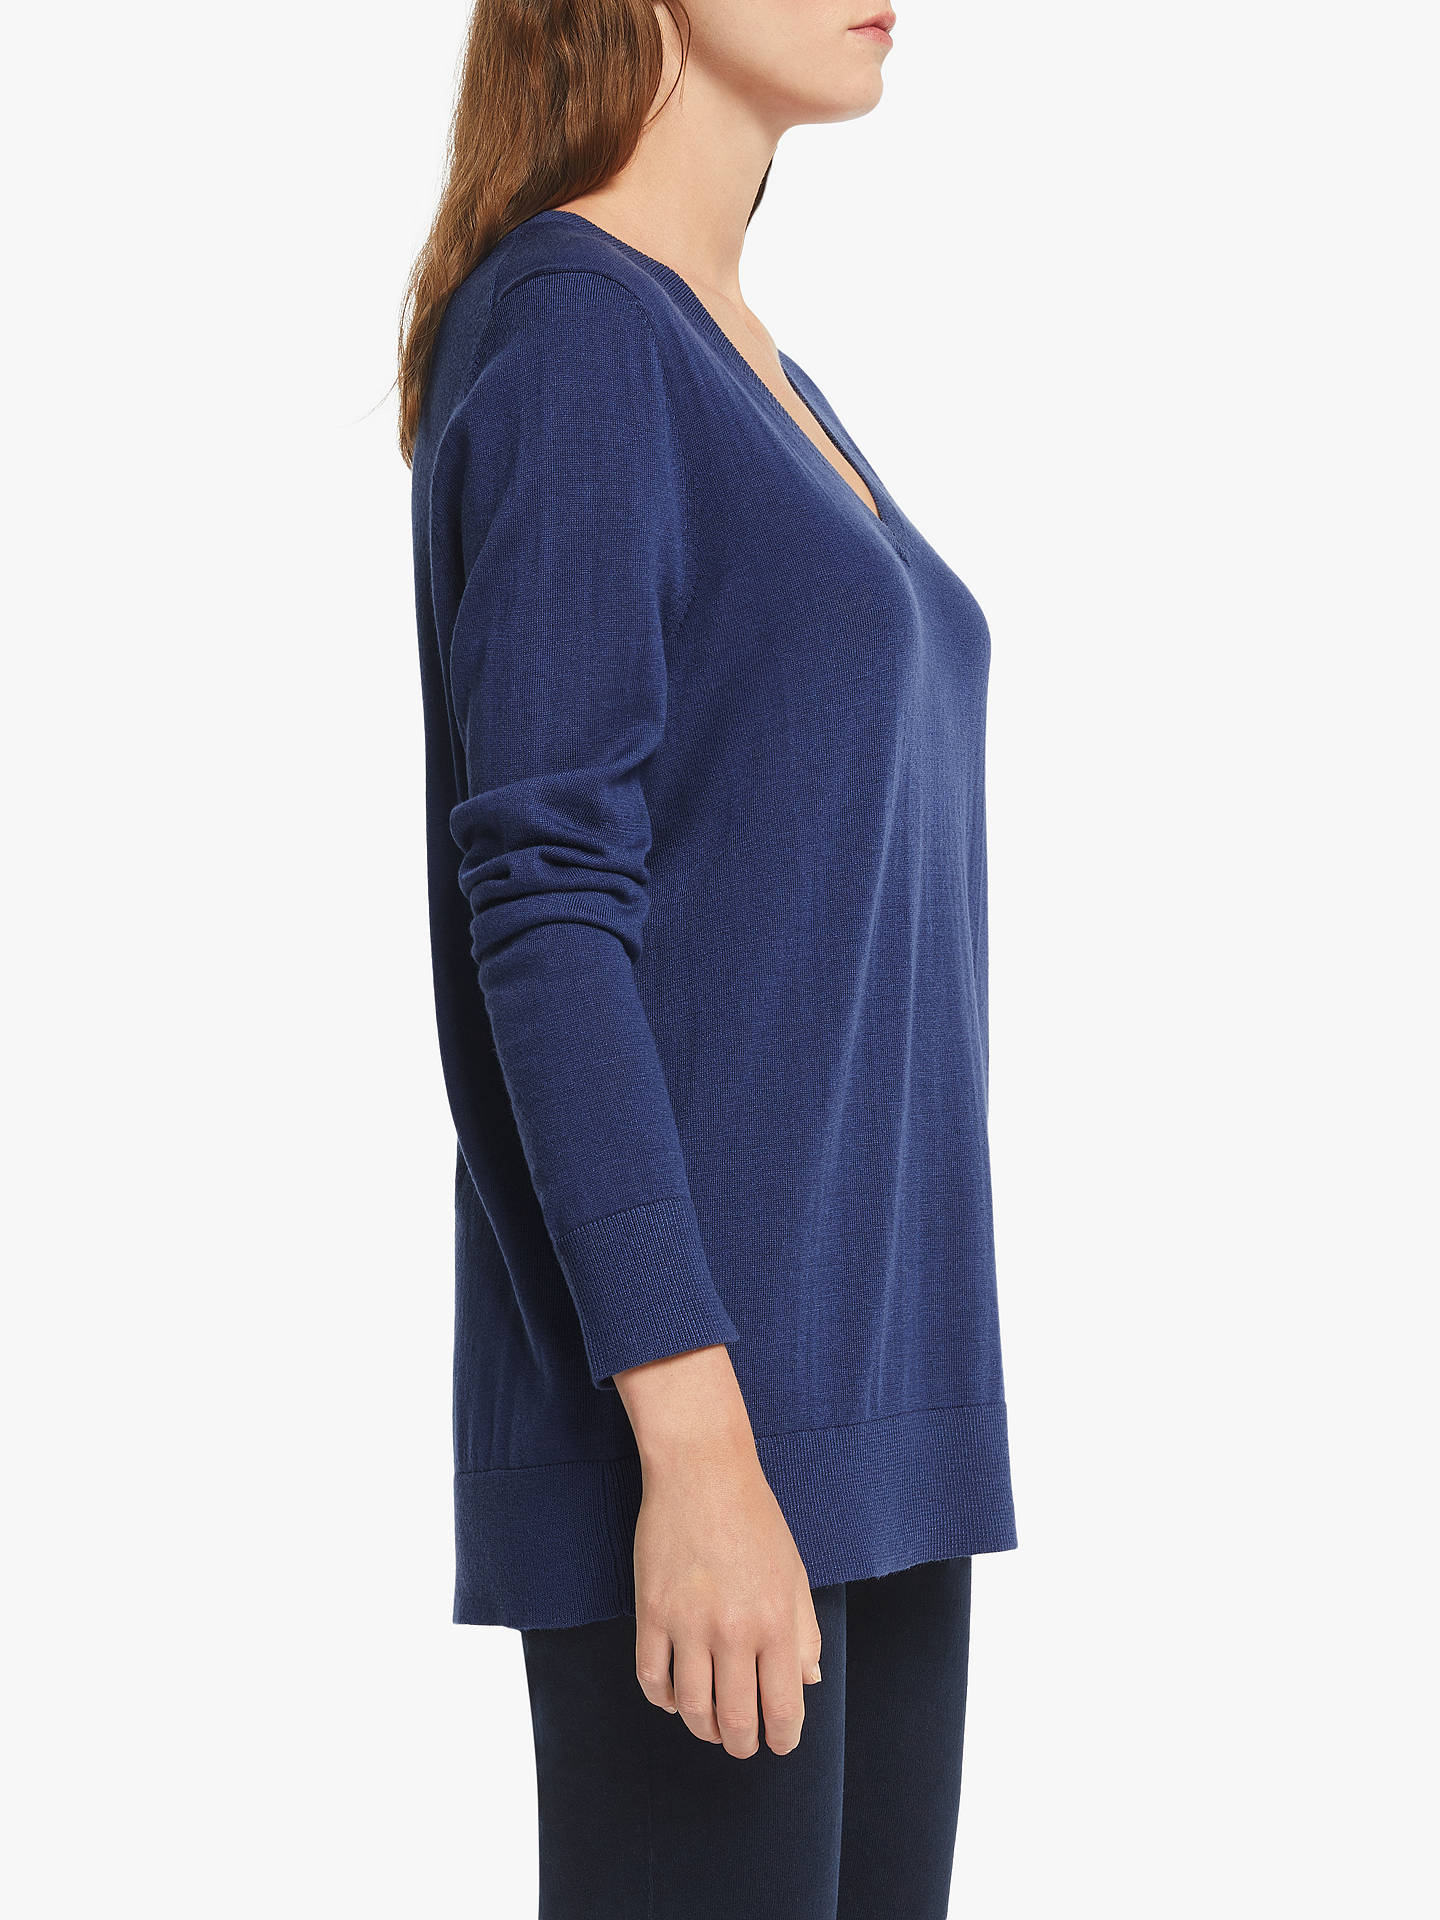 Buy John Lewis & Partners Relaxed V-Neck Sweater, Twilight Blue, 10 Online at johnlewis.com